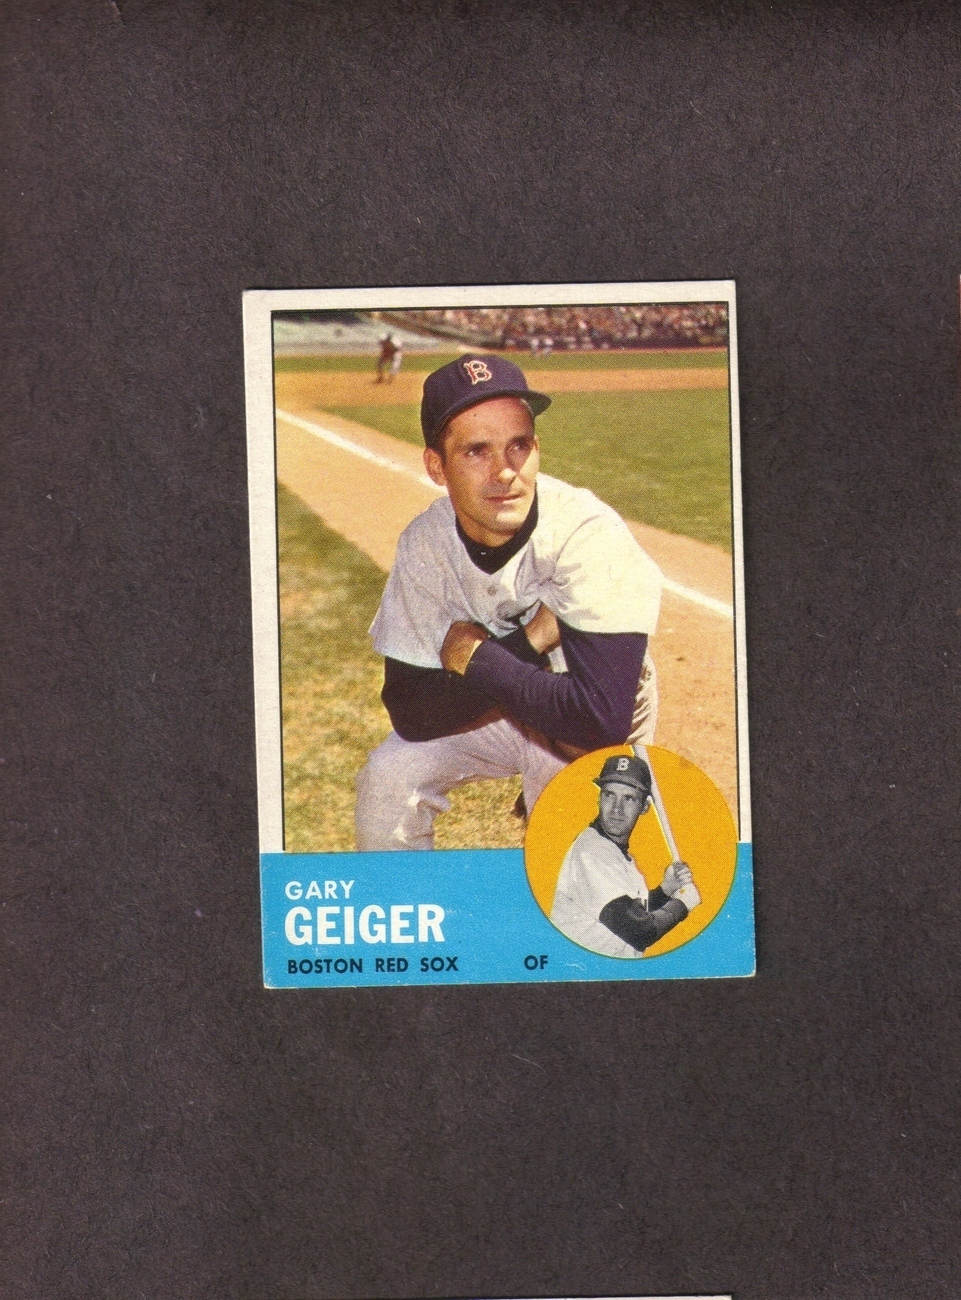 1963 Topps high # 513 Gary Geiger Boston Red Sox